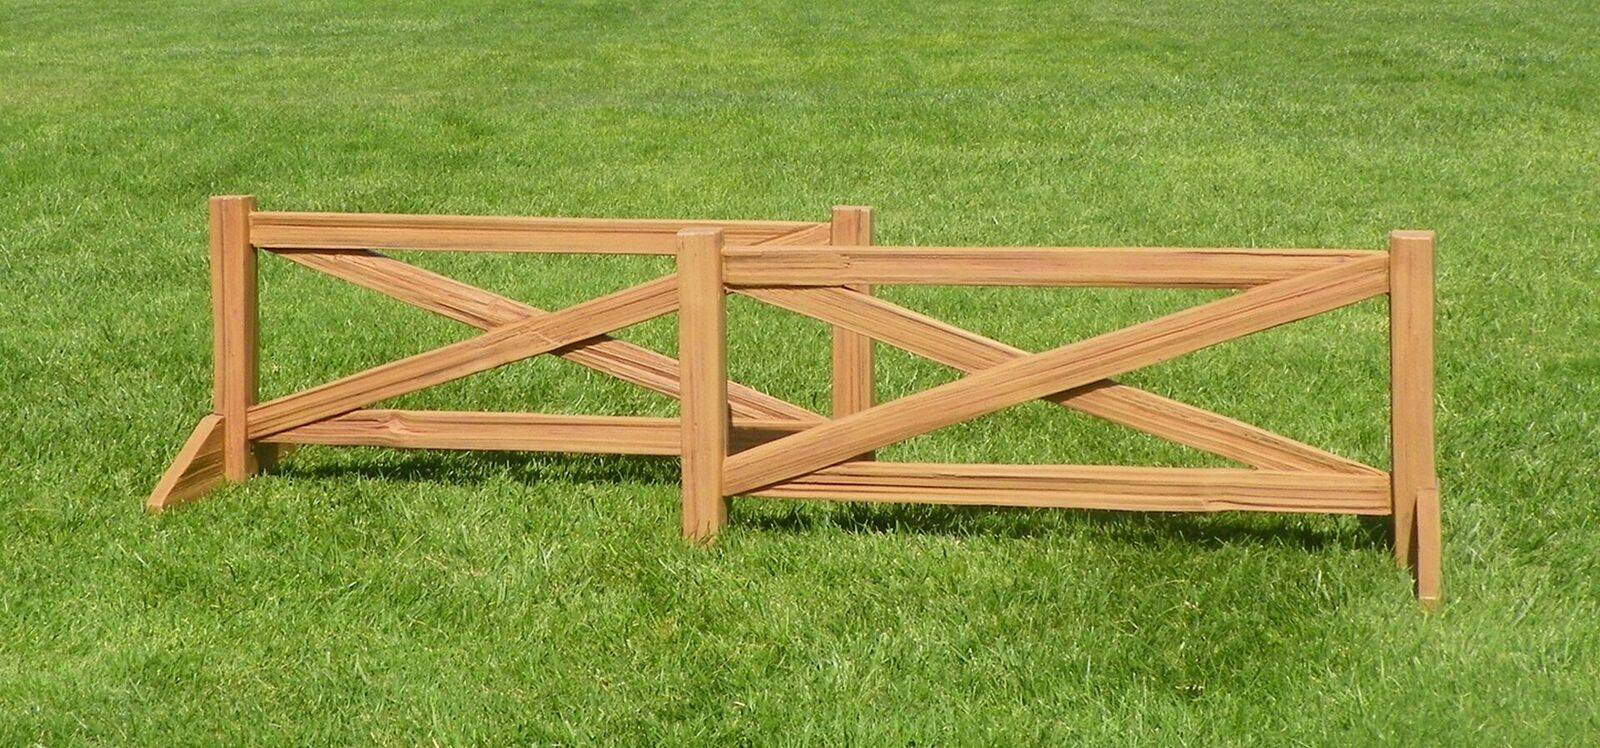 Burlingham Sports Cedar Split Rail Fence Set